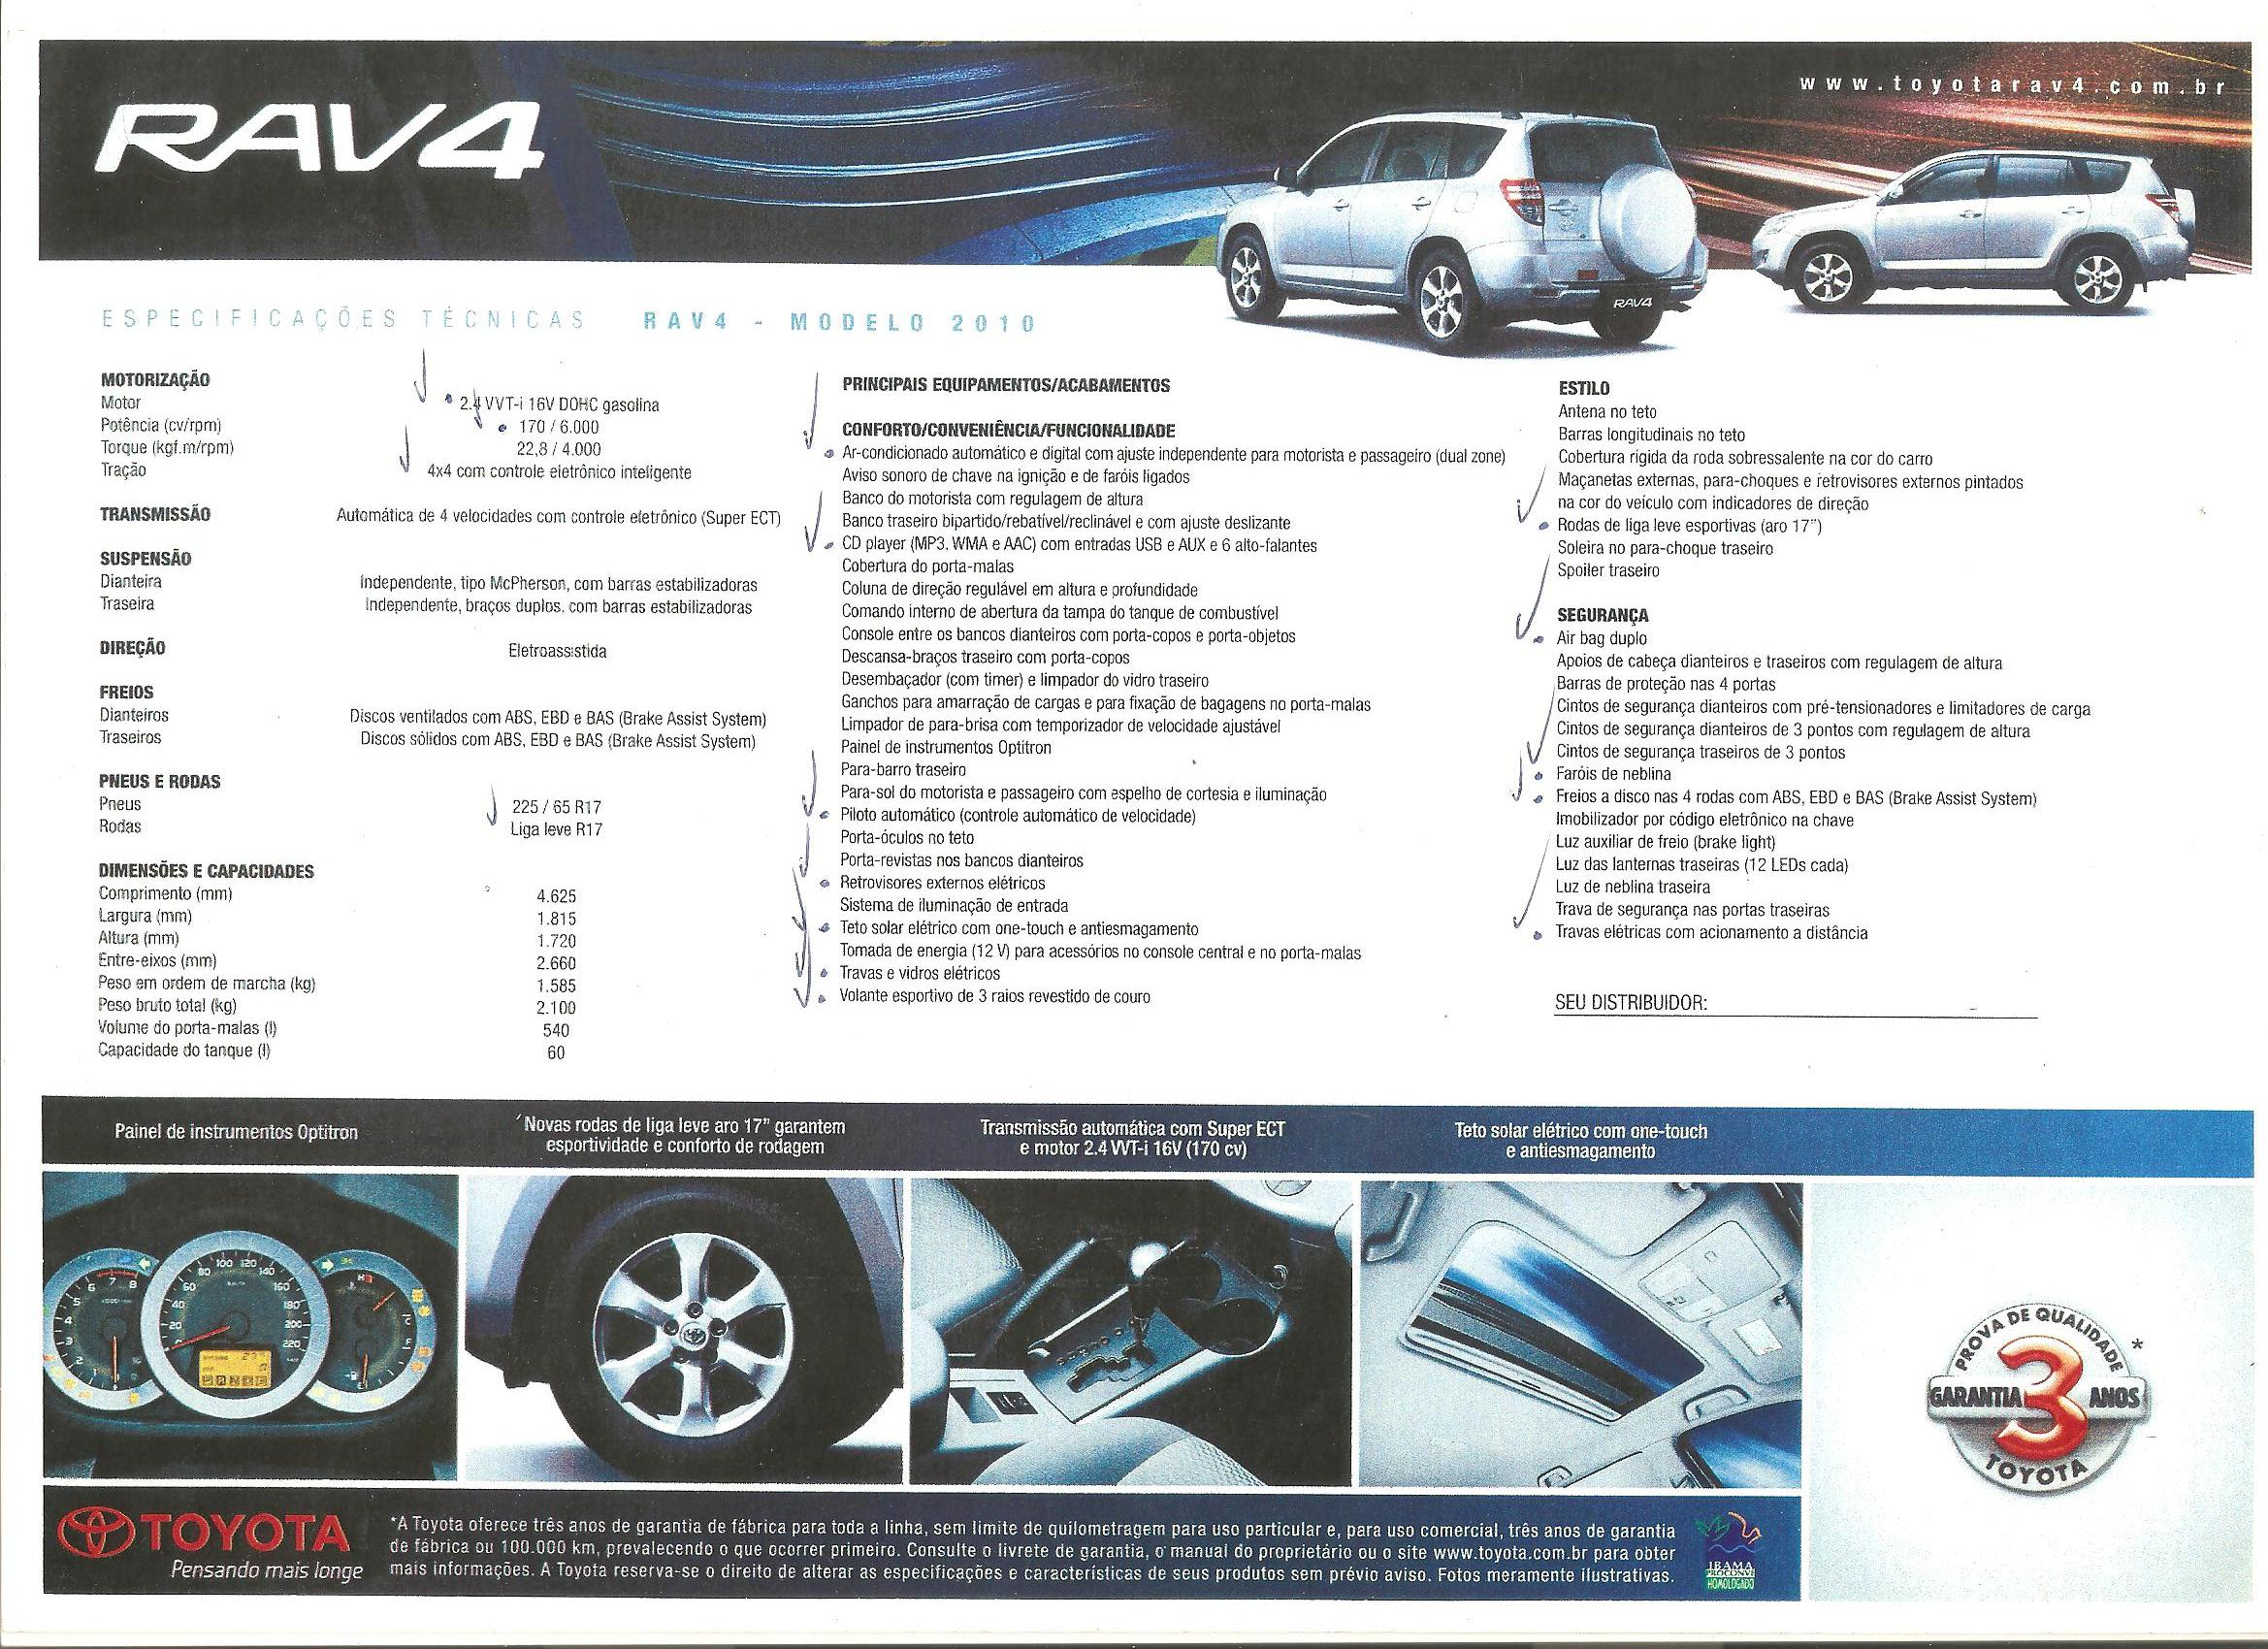 2011 rav4 owners manual pdf